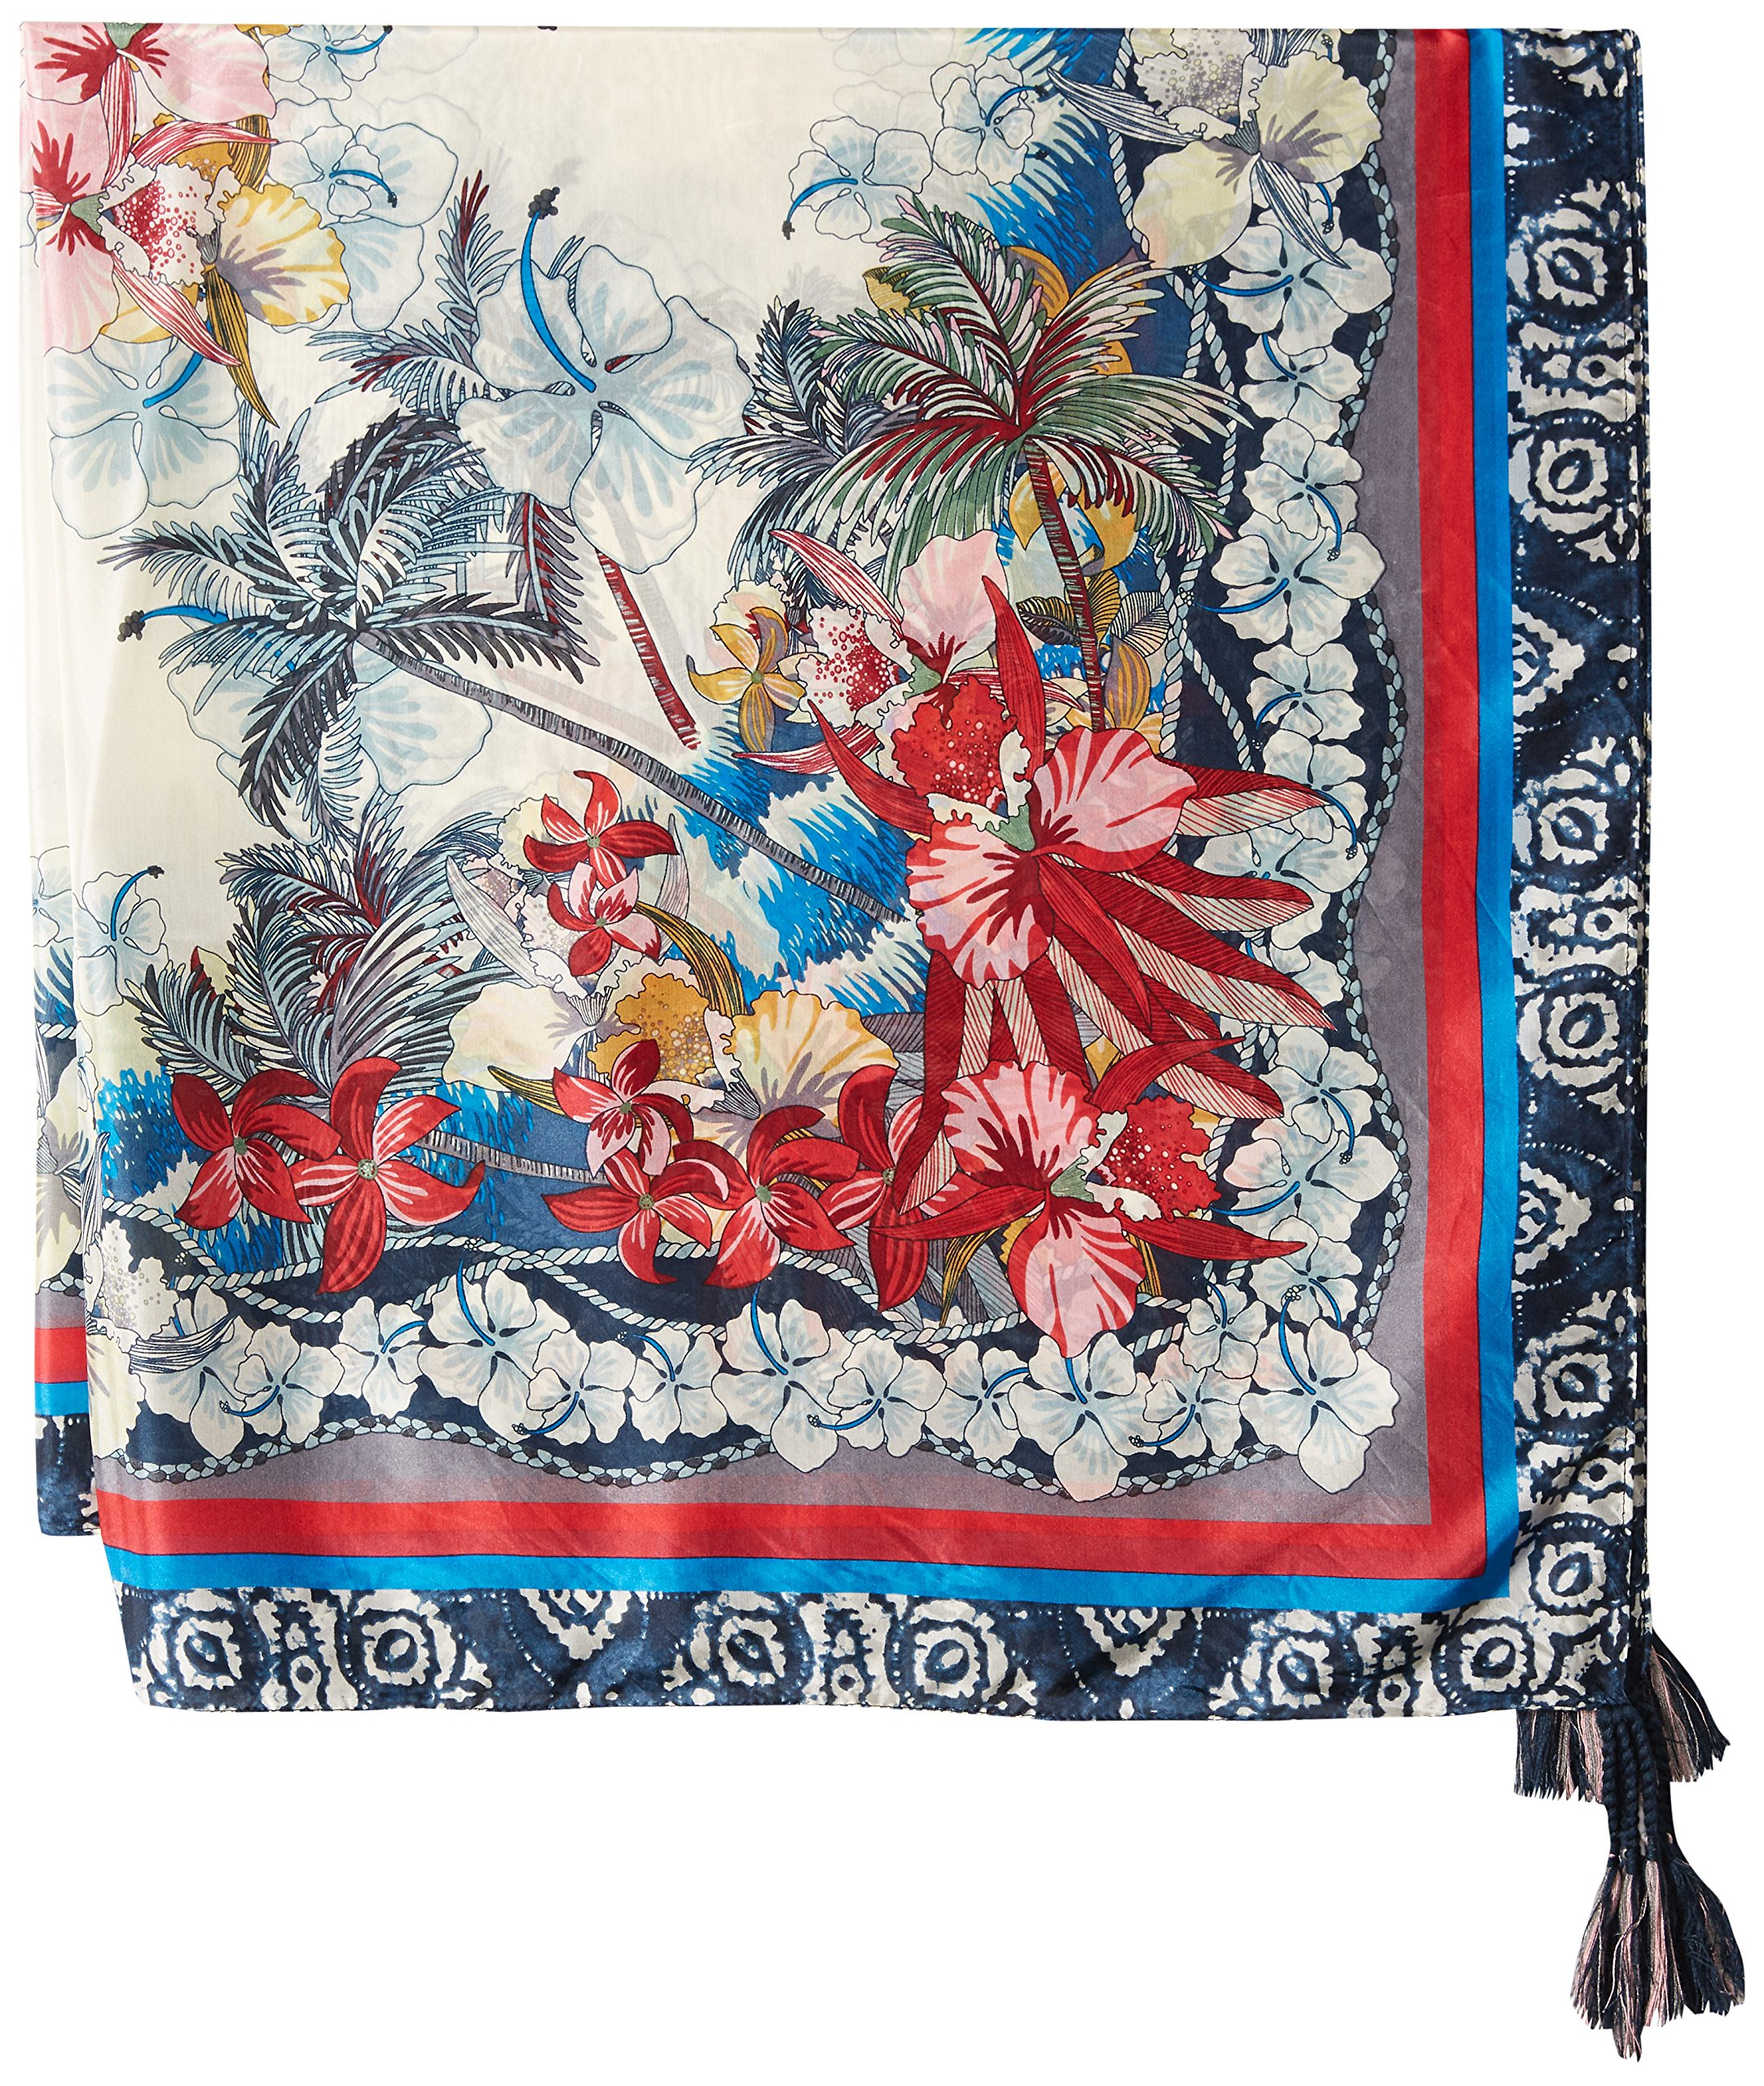 Johnny Was Women's Patterned Silk Square Scarf with Tassels, Vacation Multi O/S by Johnny Was (Image #2)